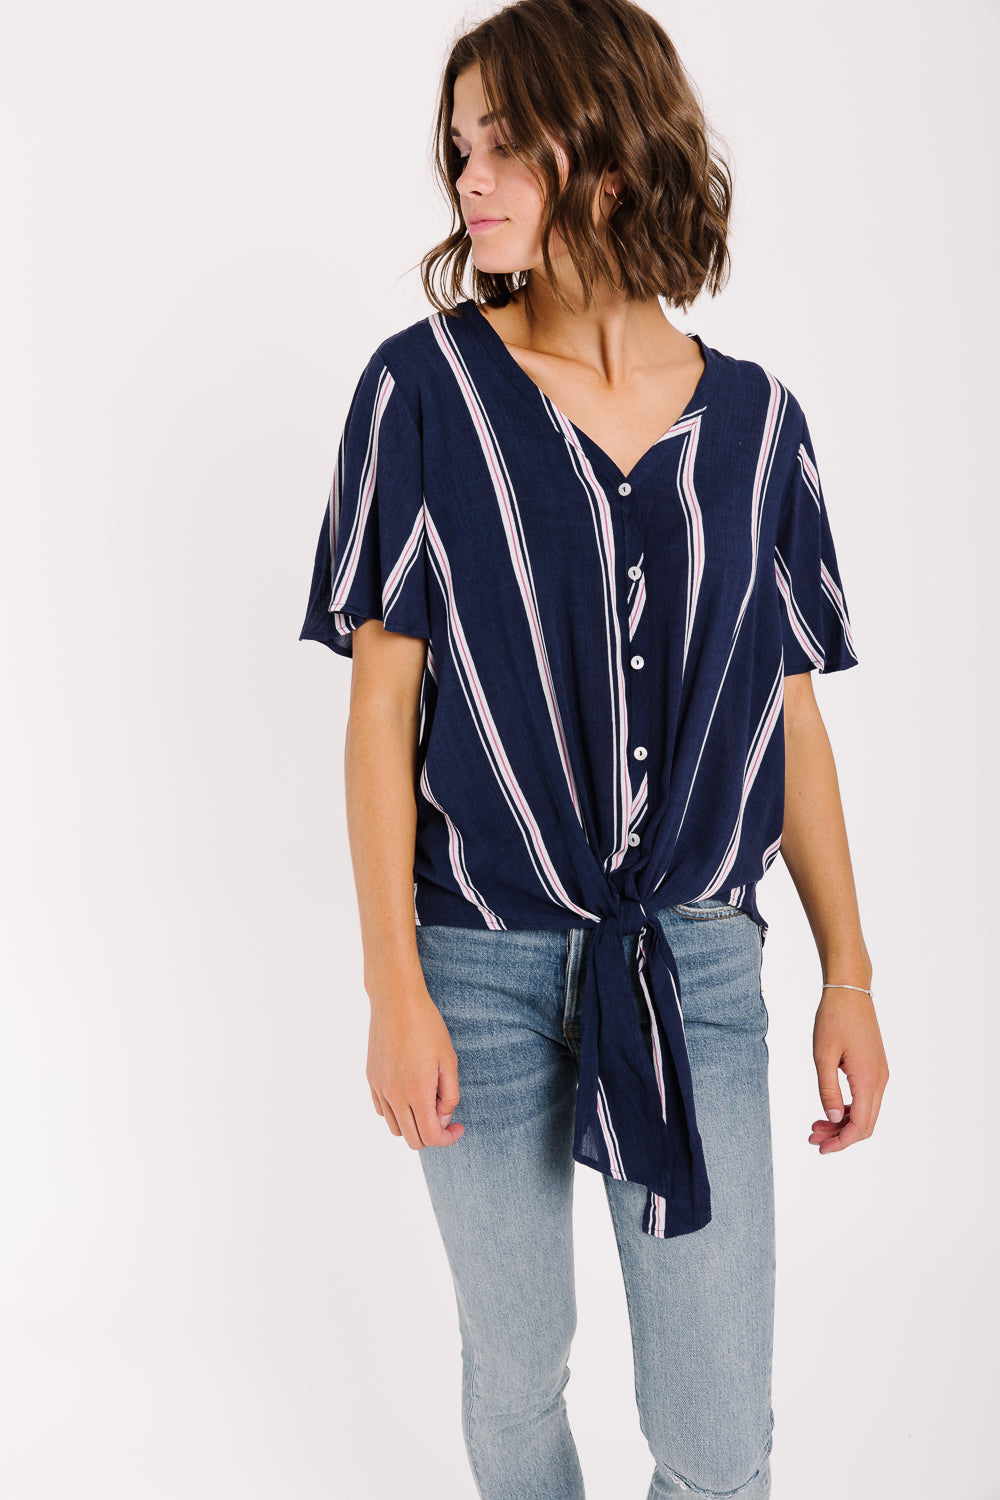 The Irwin Striped Tie Blouse in Navy